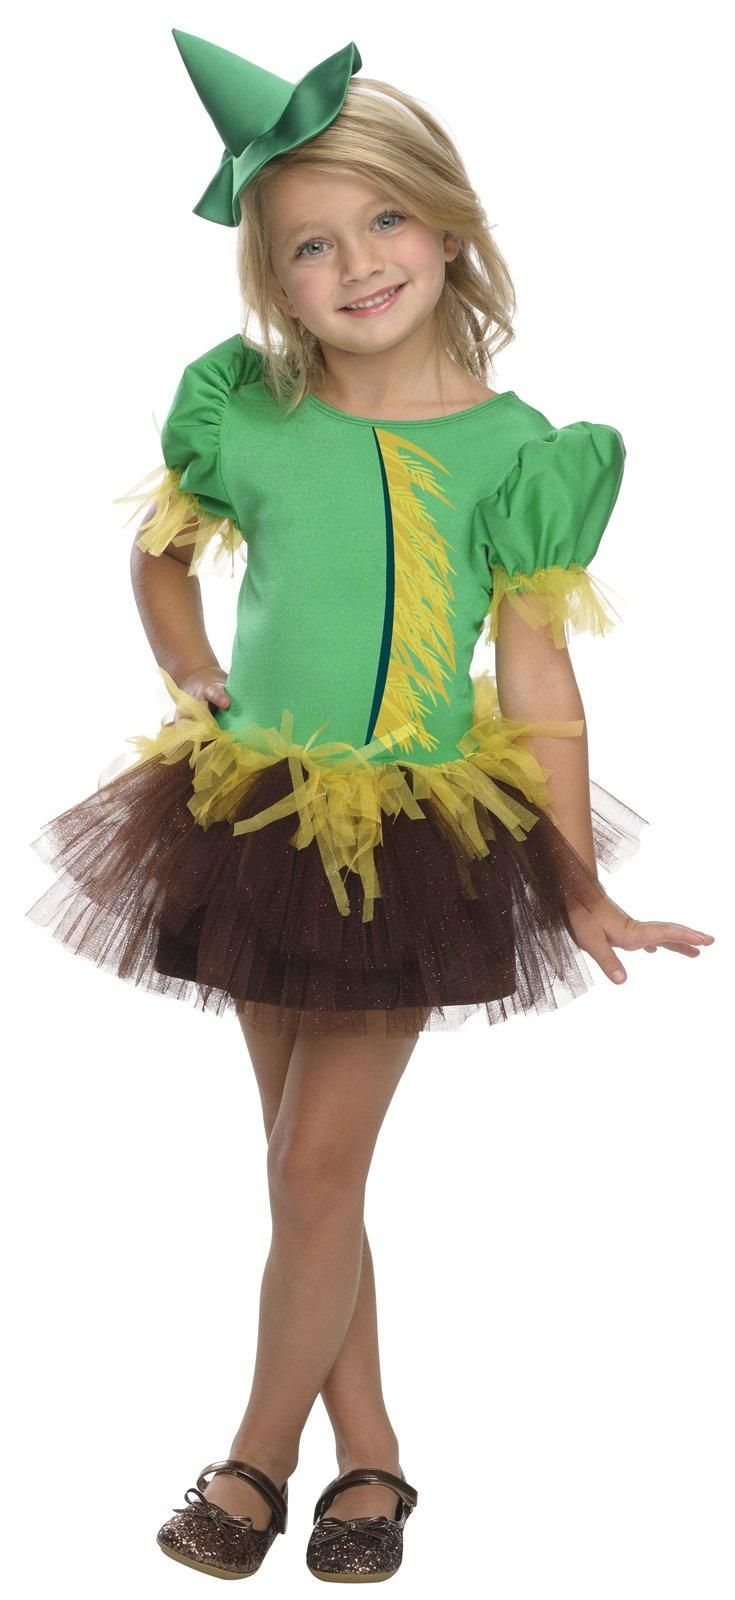 Wizard of Oz - Scarecrow Tutu Girls Costume from Buycostumes.com